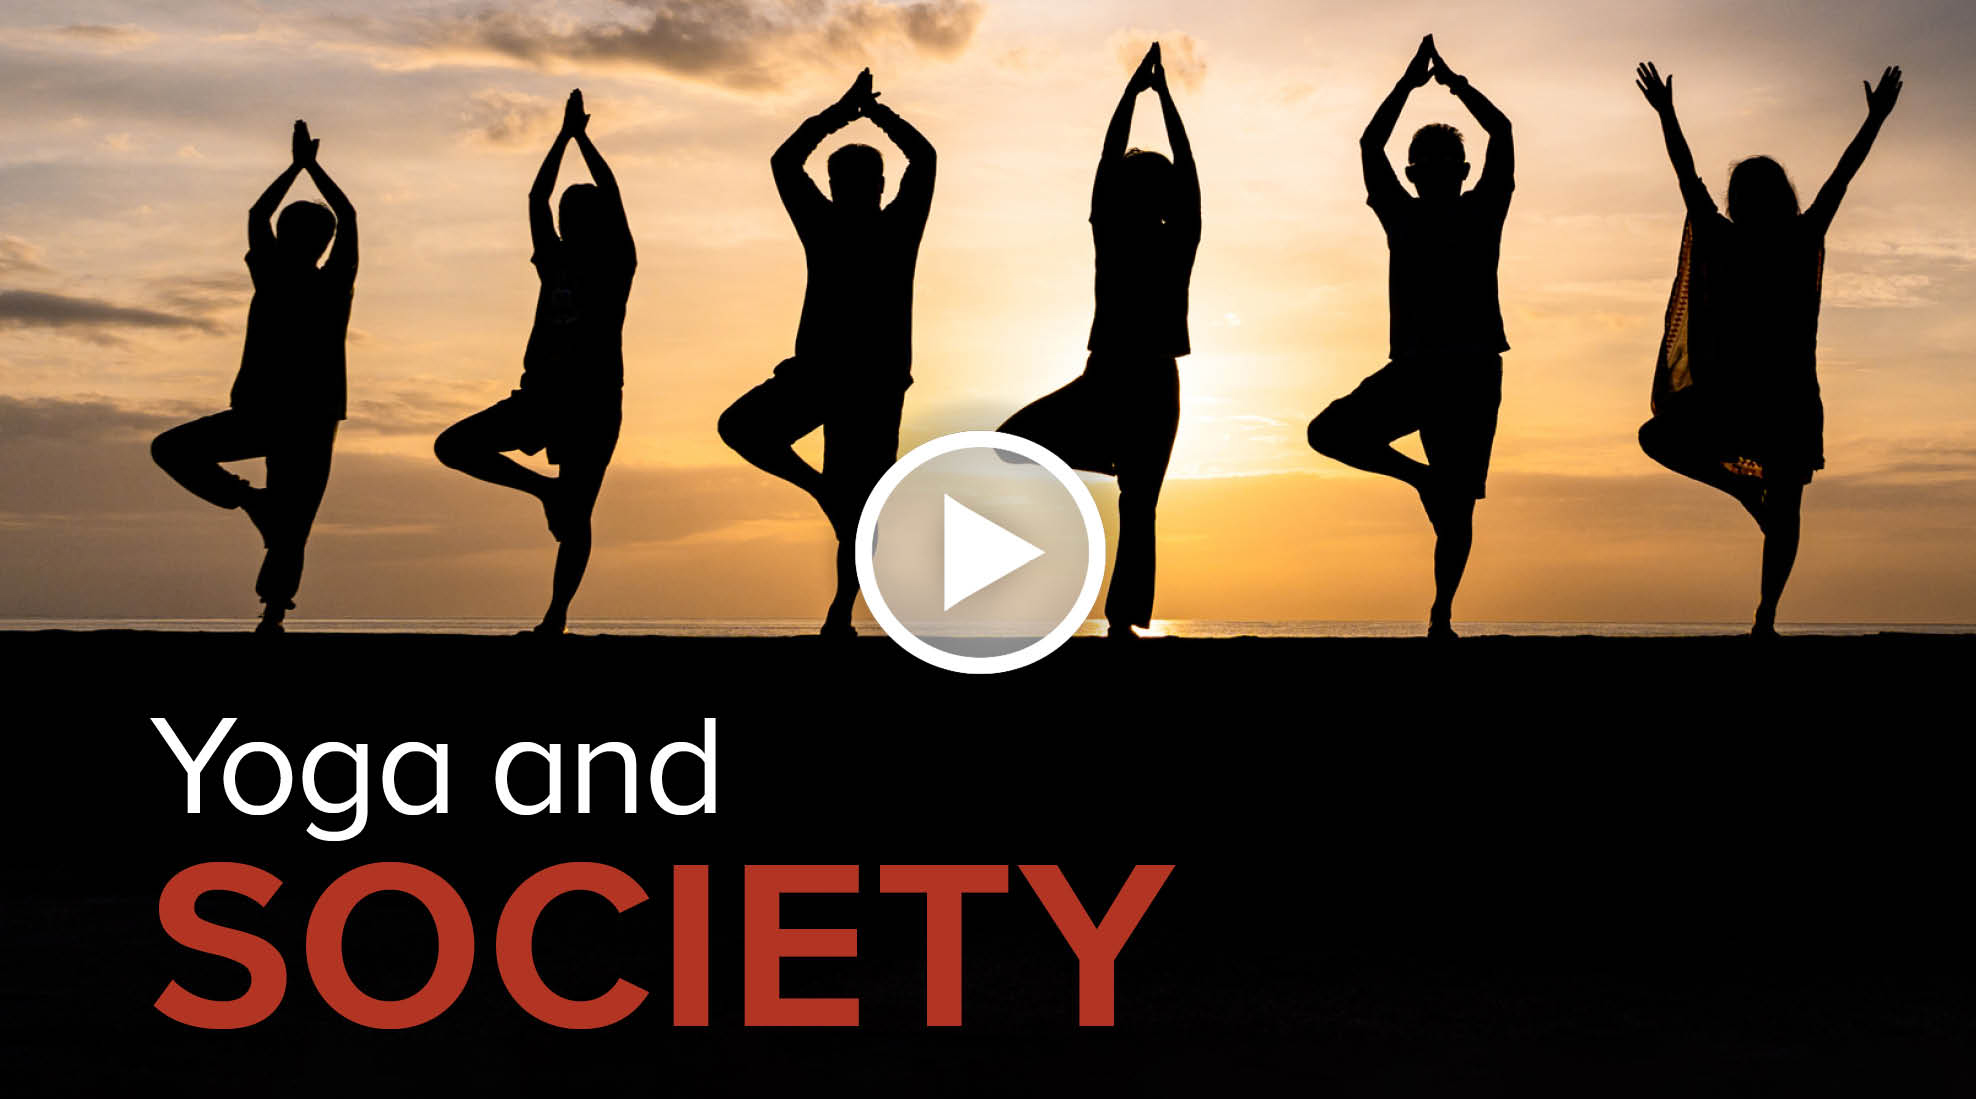 Yoga and Society